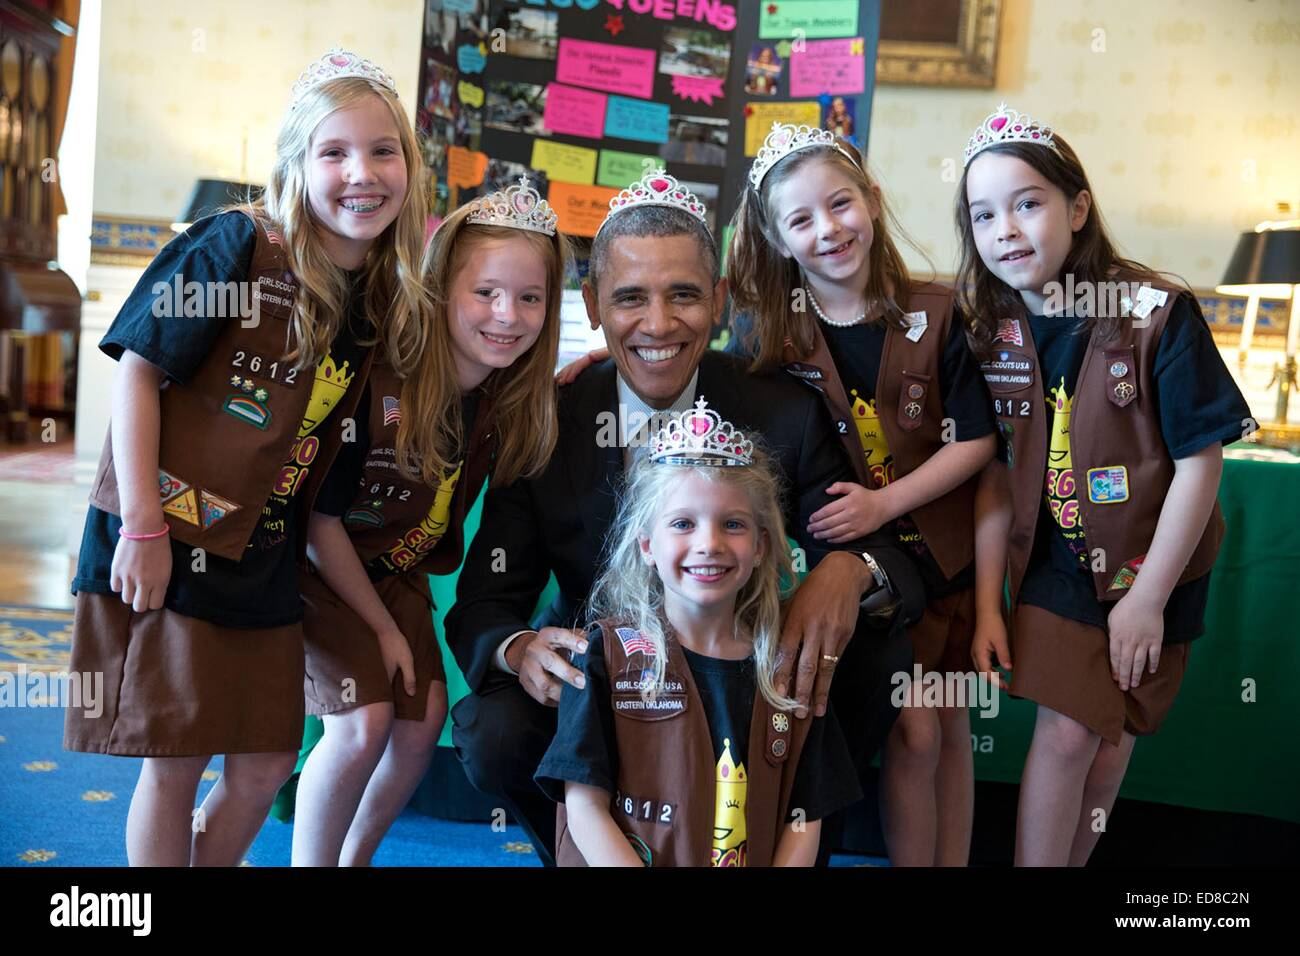 US President Barack Obama dons a princess crown as he poses for a photo with Brownies from Girl Scout Troop 2612 - Stock Image